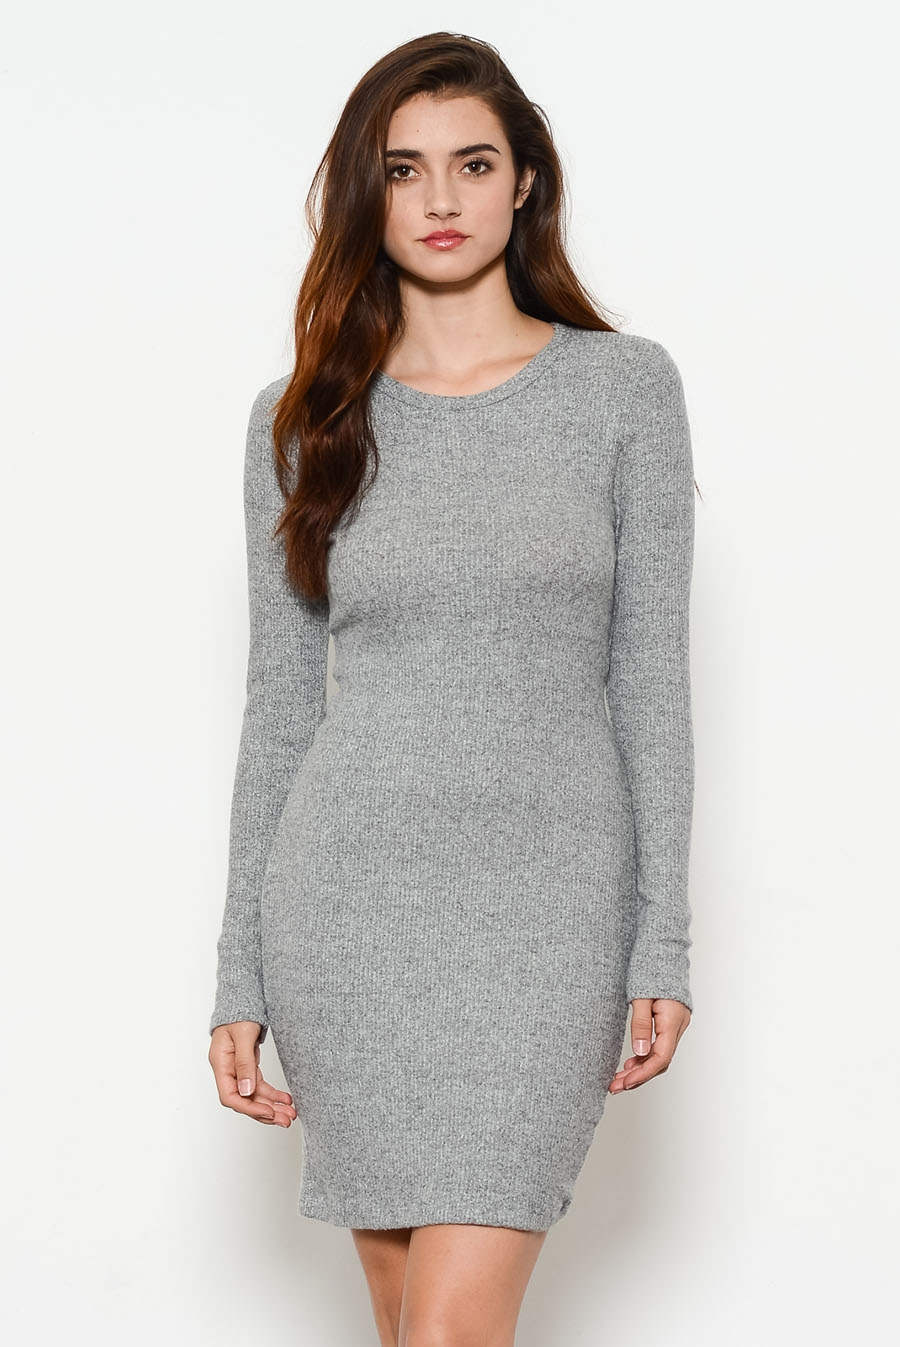 BRUST ROUND NECK DRESS - orangeshine.com